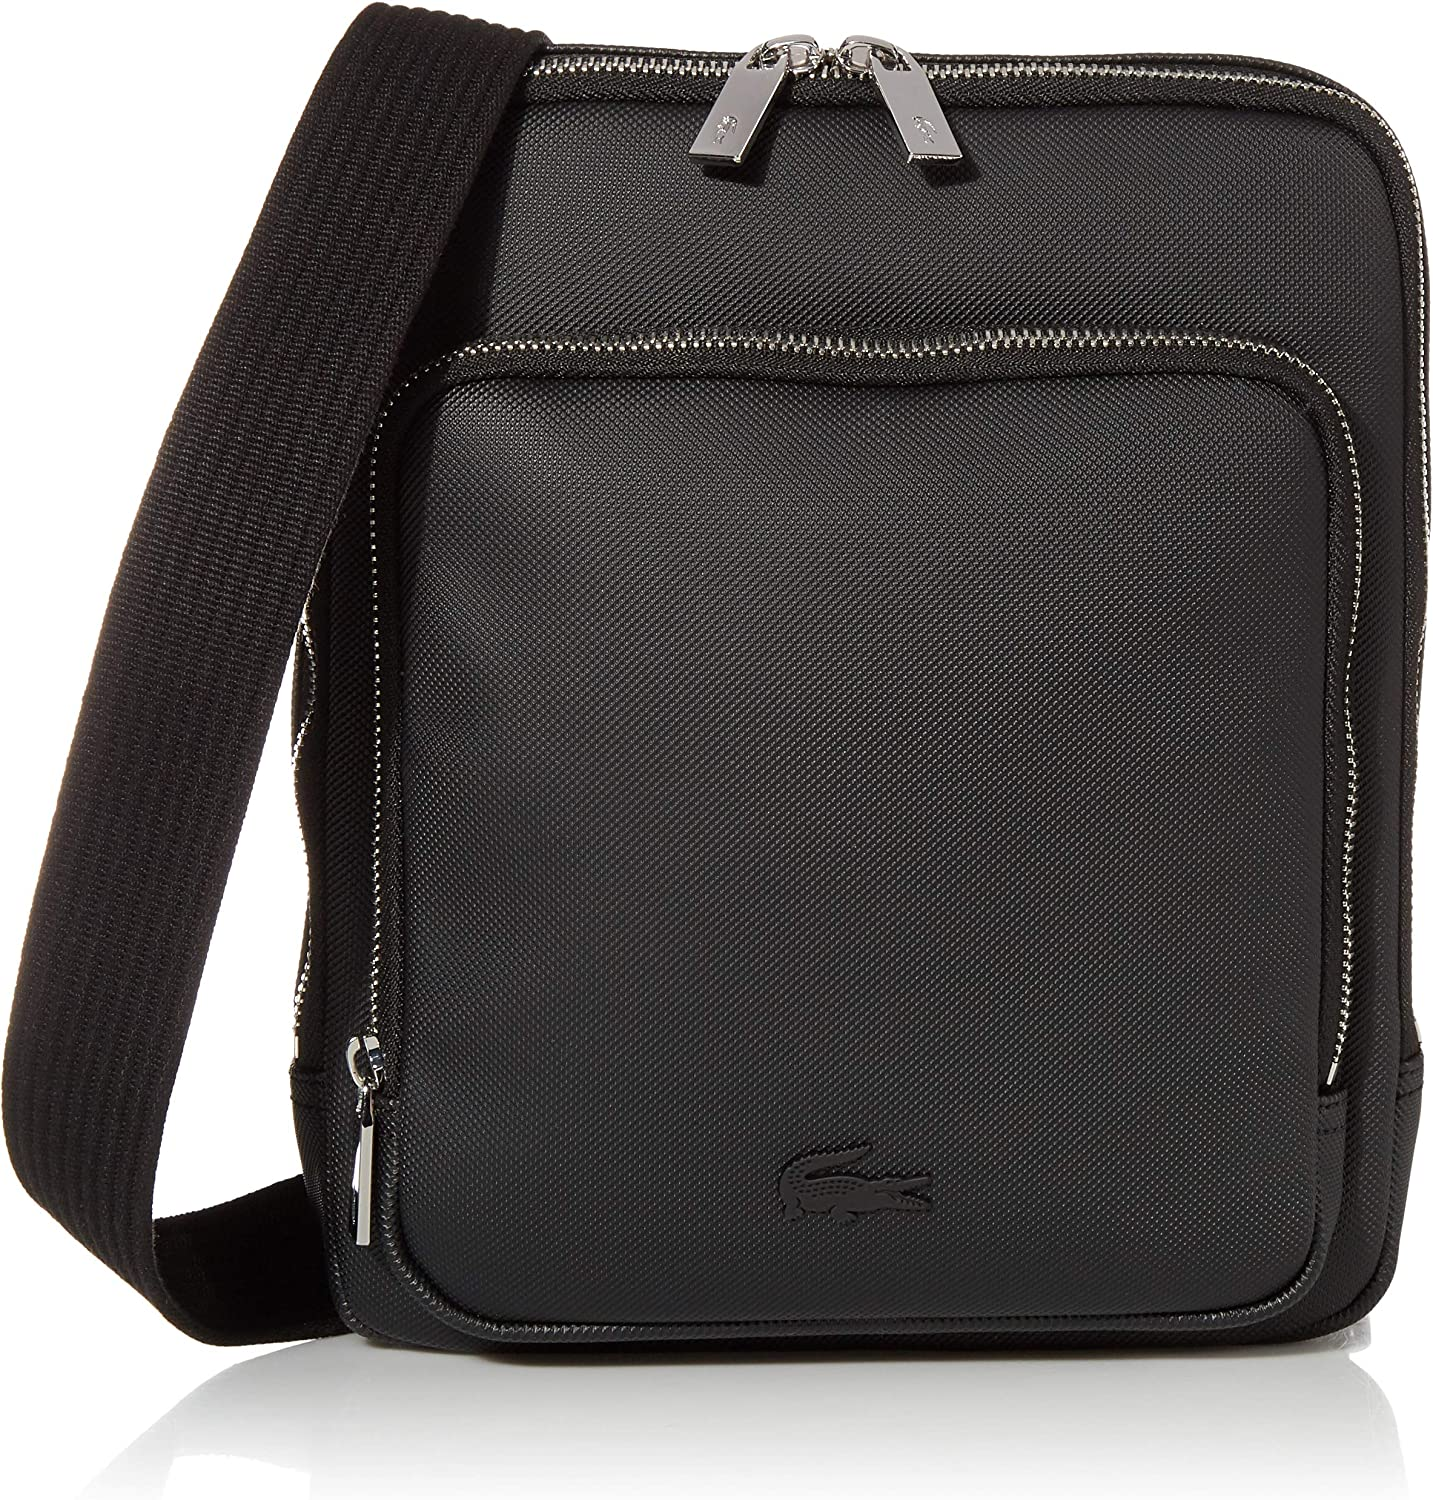 Lacoste Mens Classic Crossover Bag